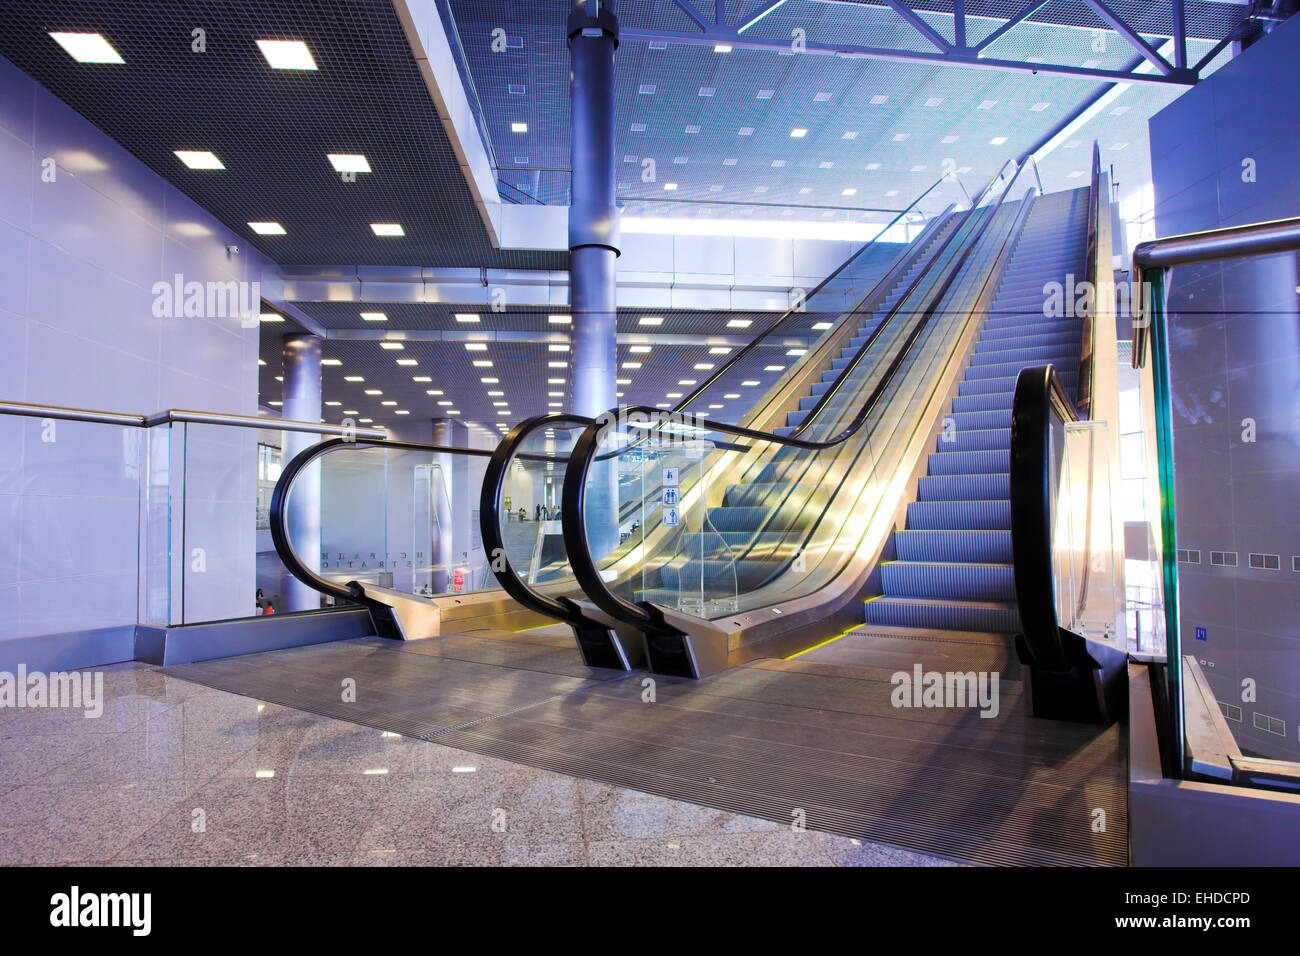 Escalators in exhibition centre Stock Photo